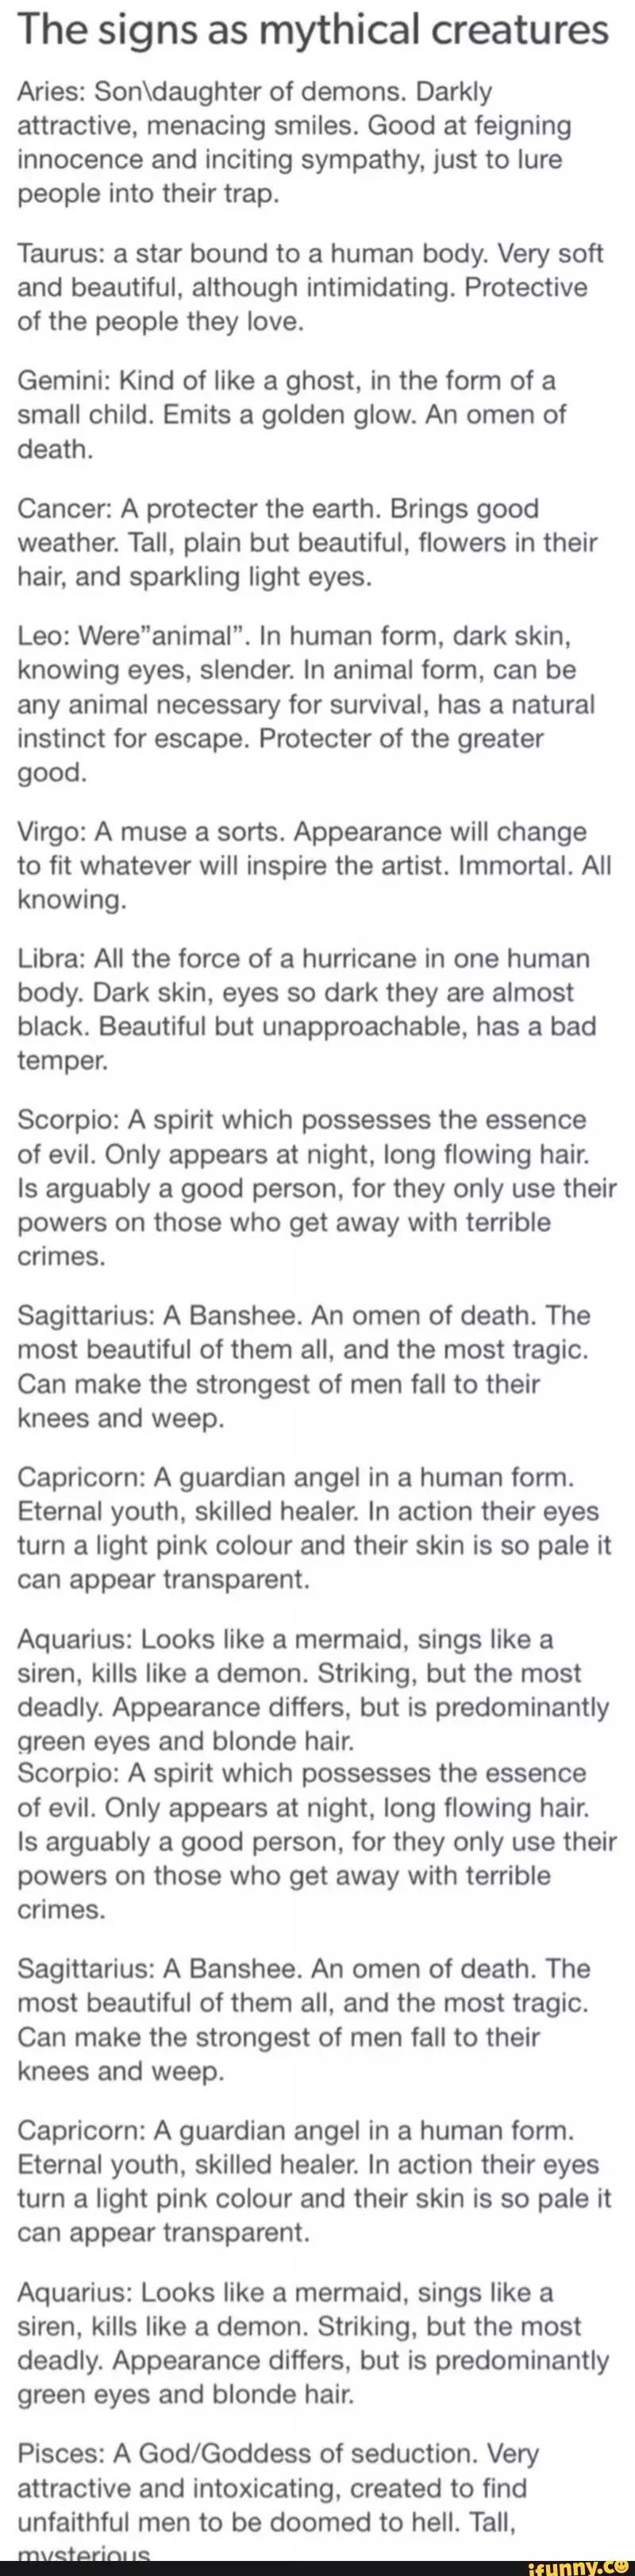 My sun and moon signs don't go together